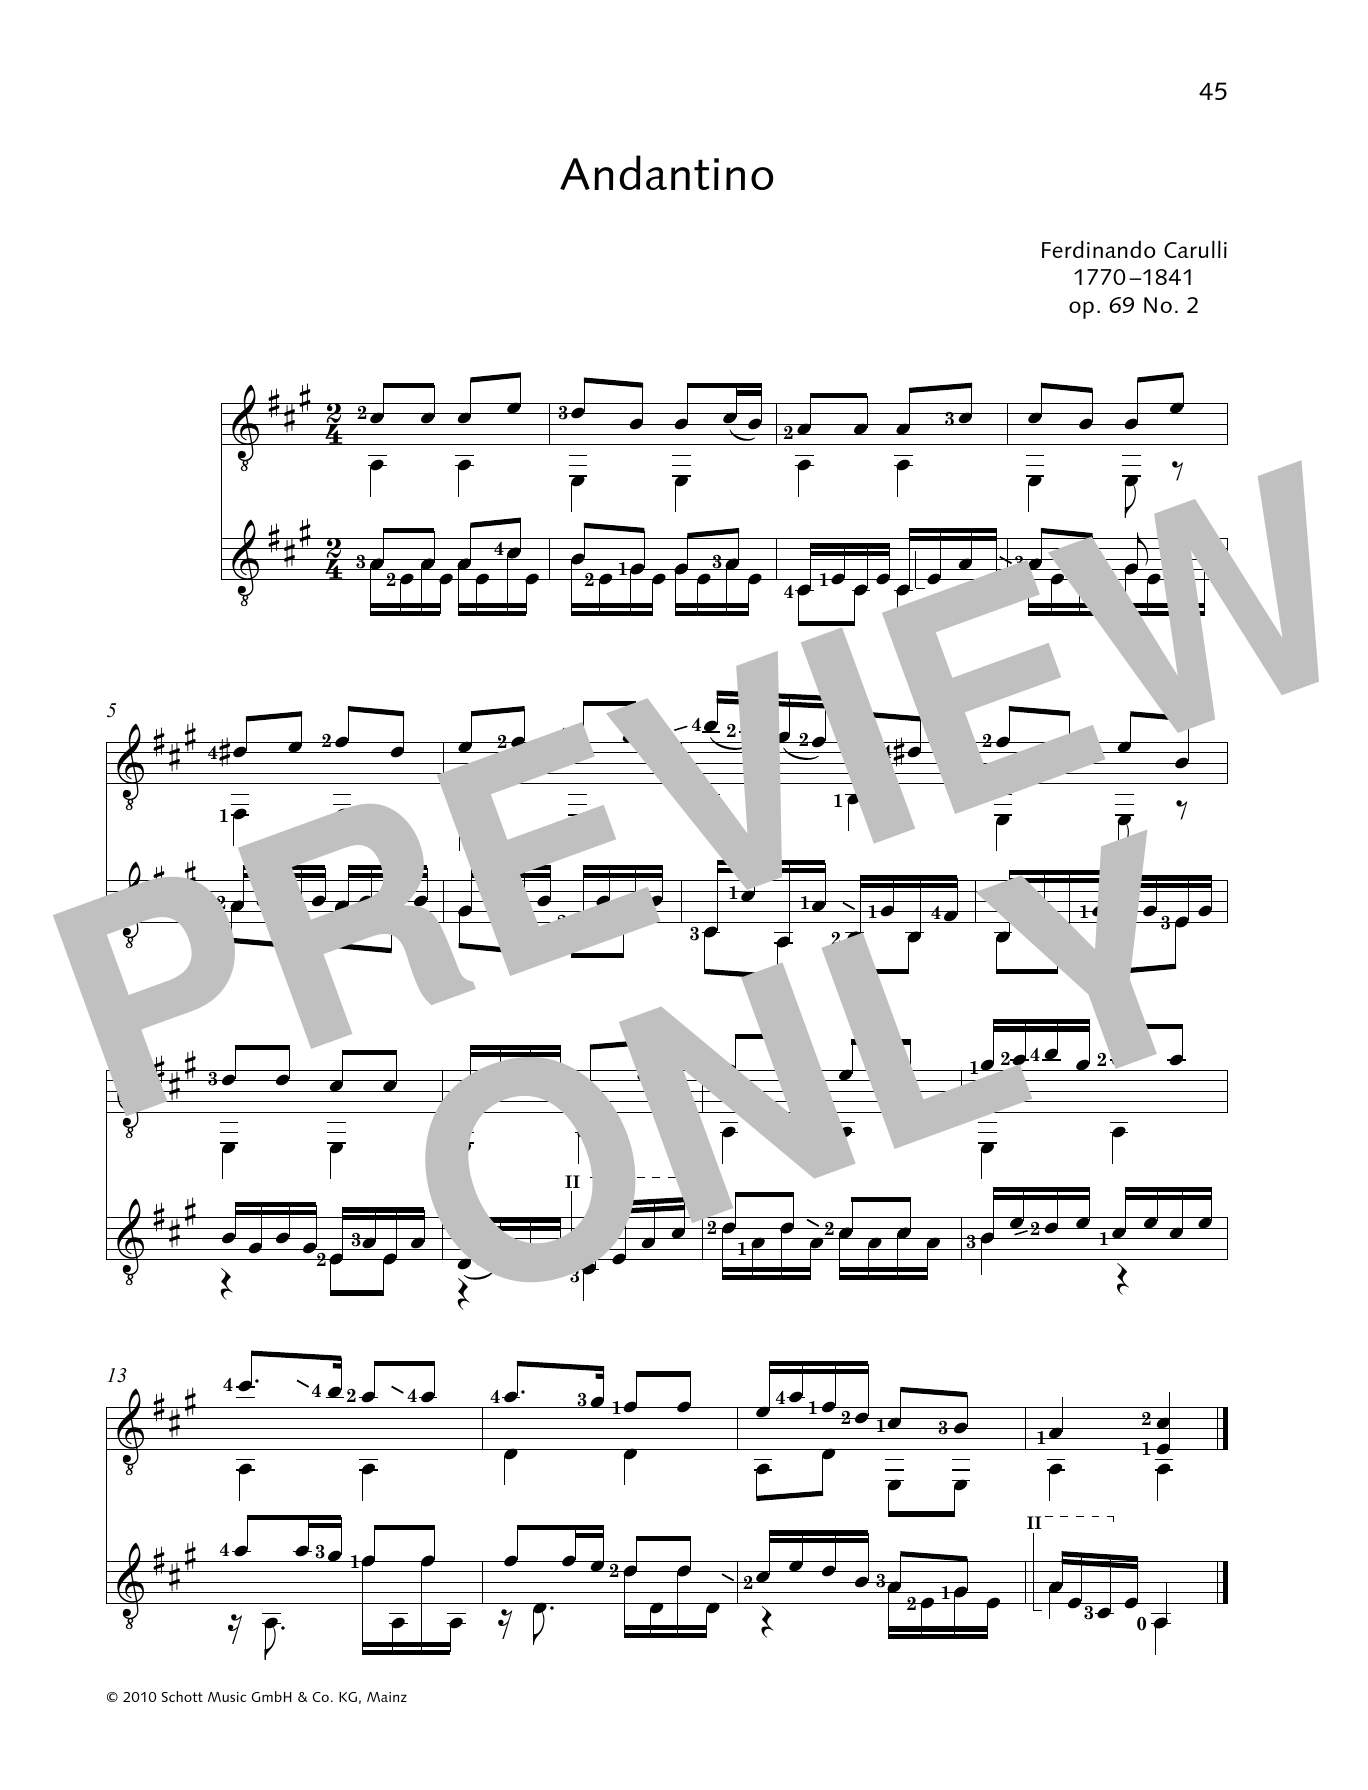 Andantino - Full Score Partition Digitale